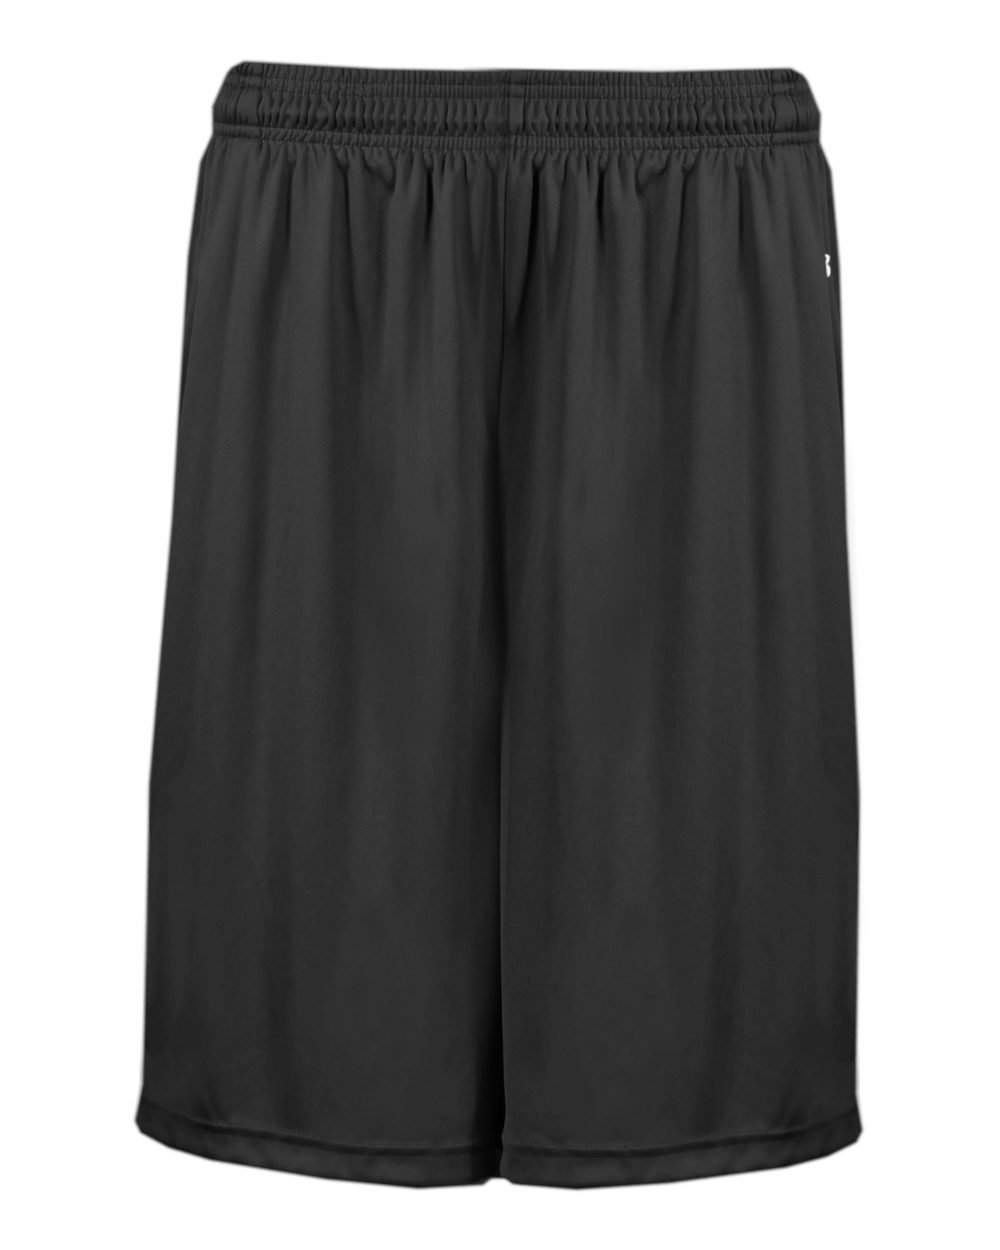 Athletic Sports Performance Wicking B-Core Pocketed Shorts 14 Colors, 10 Adult 10 /& 7 Youth 7 Sizes